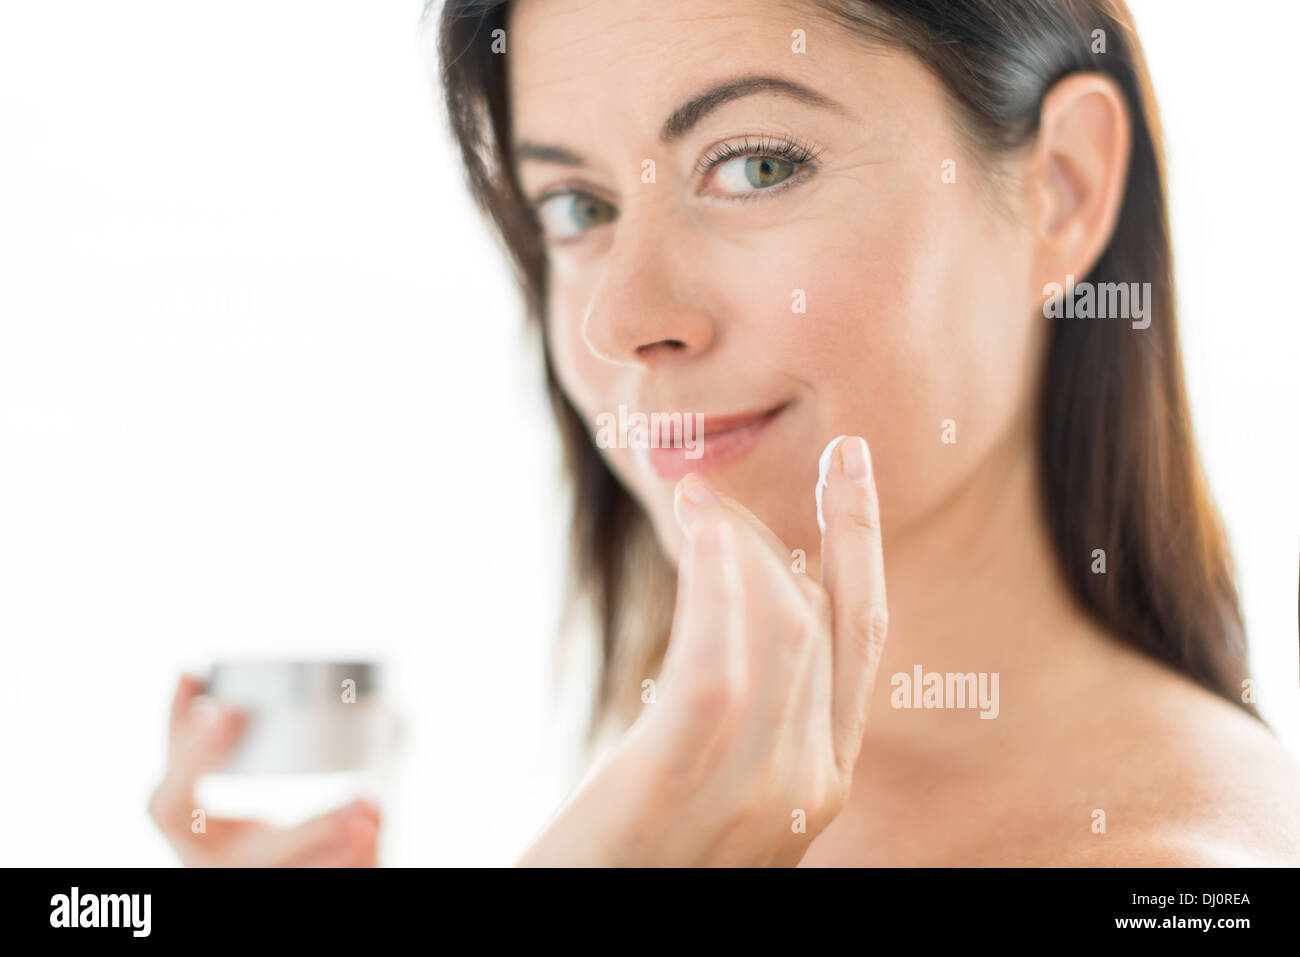 portrait of a beautiful mature lady preventing wrinkles by using a luxurious face lotion - Stock Image